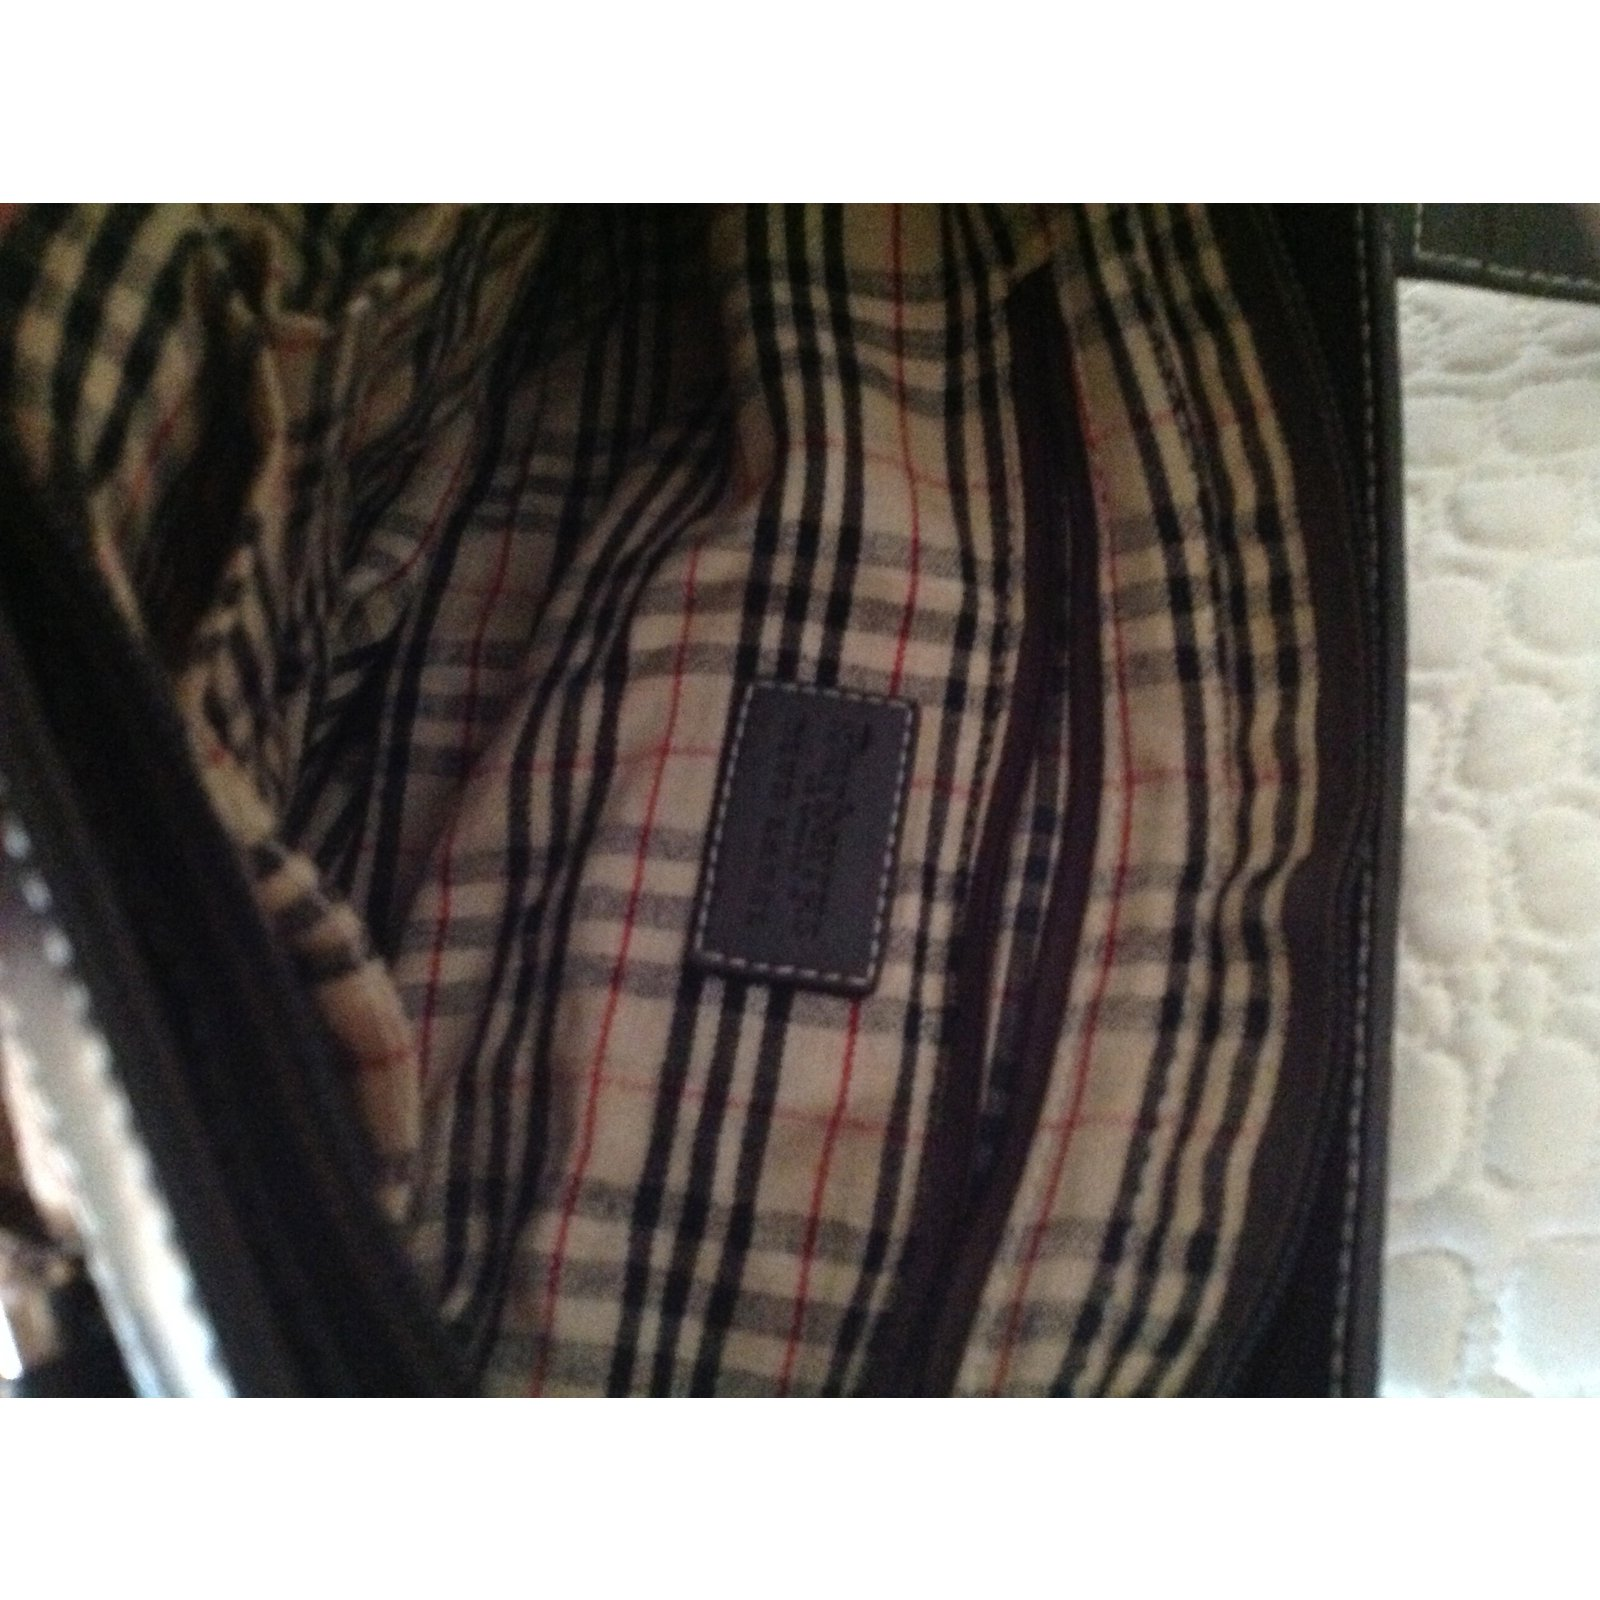 b21521409f651 Sacs à main Burberry Burberrys of london Blue Label Toile Beige ref.39007 -  Joli Closet